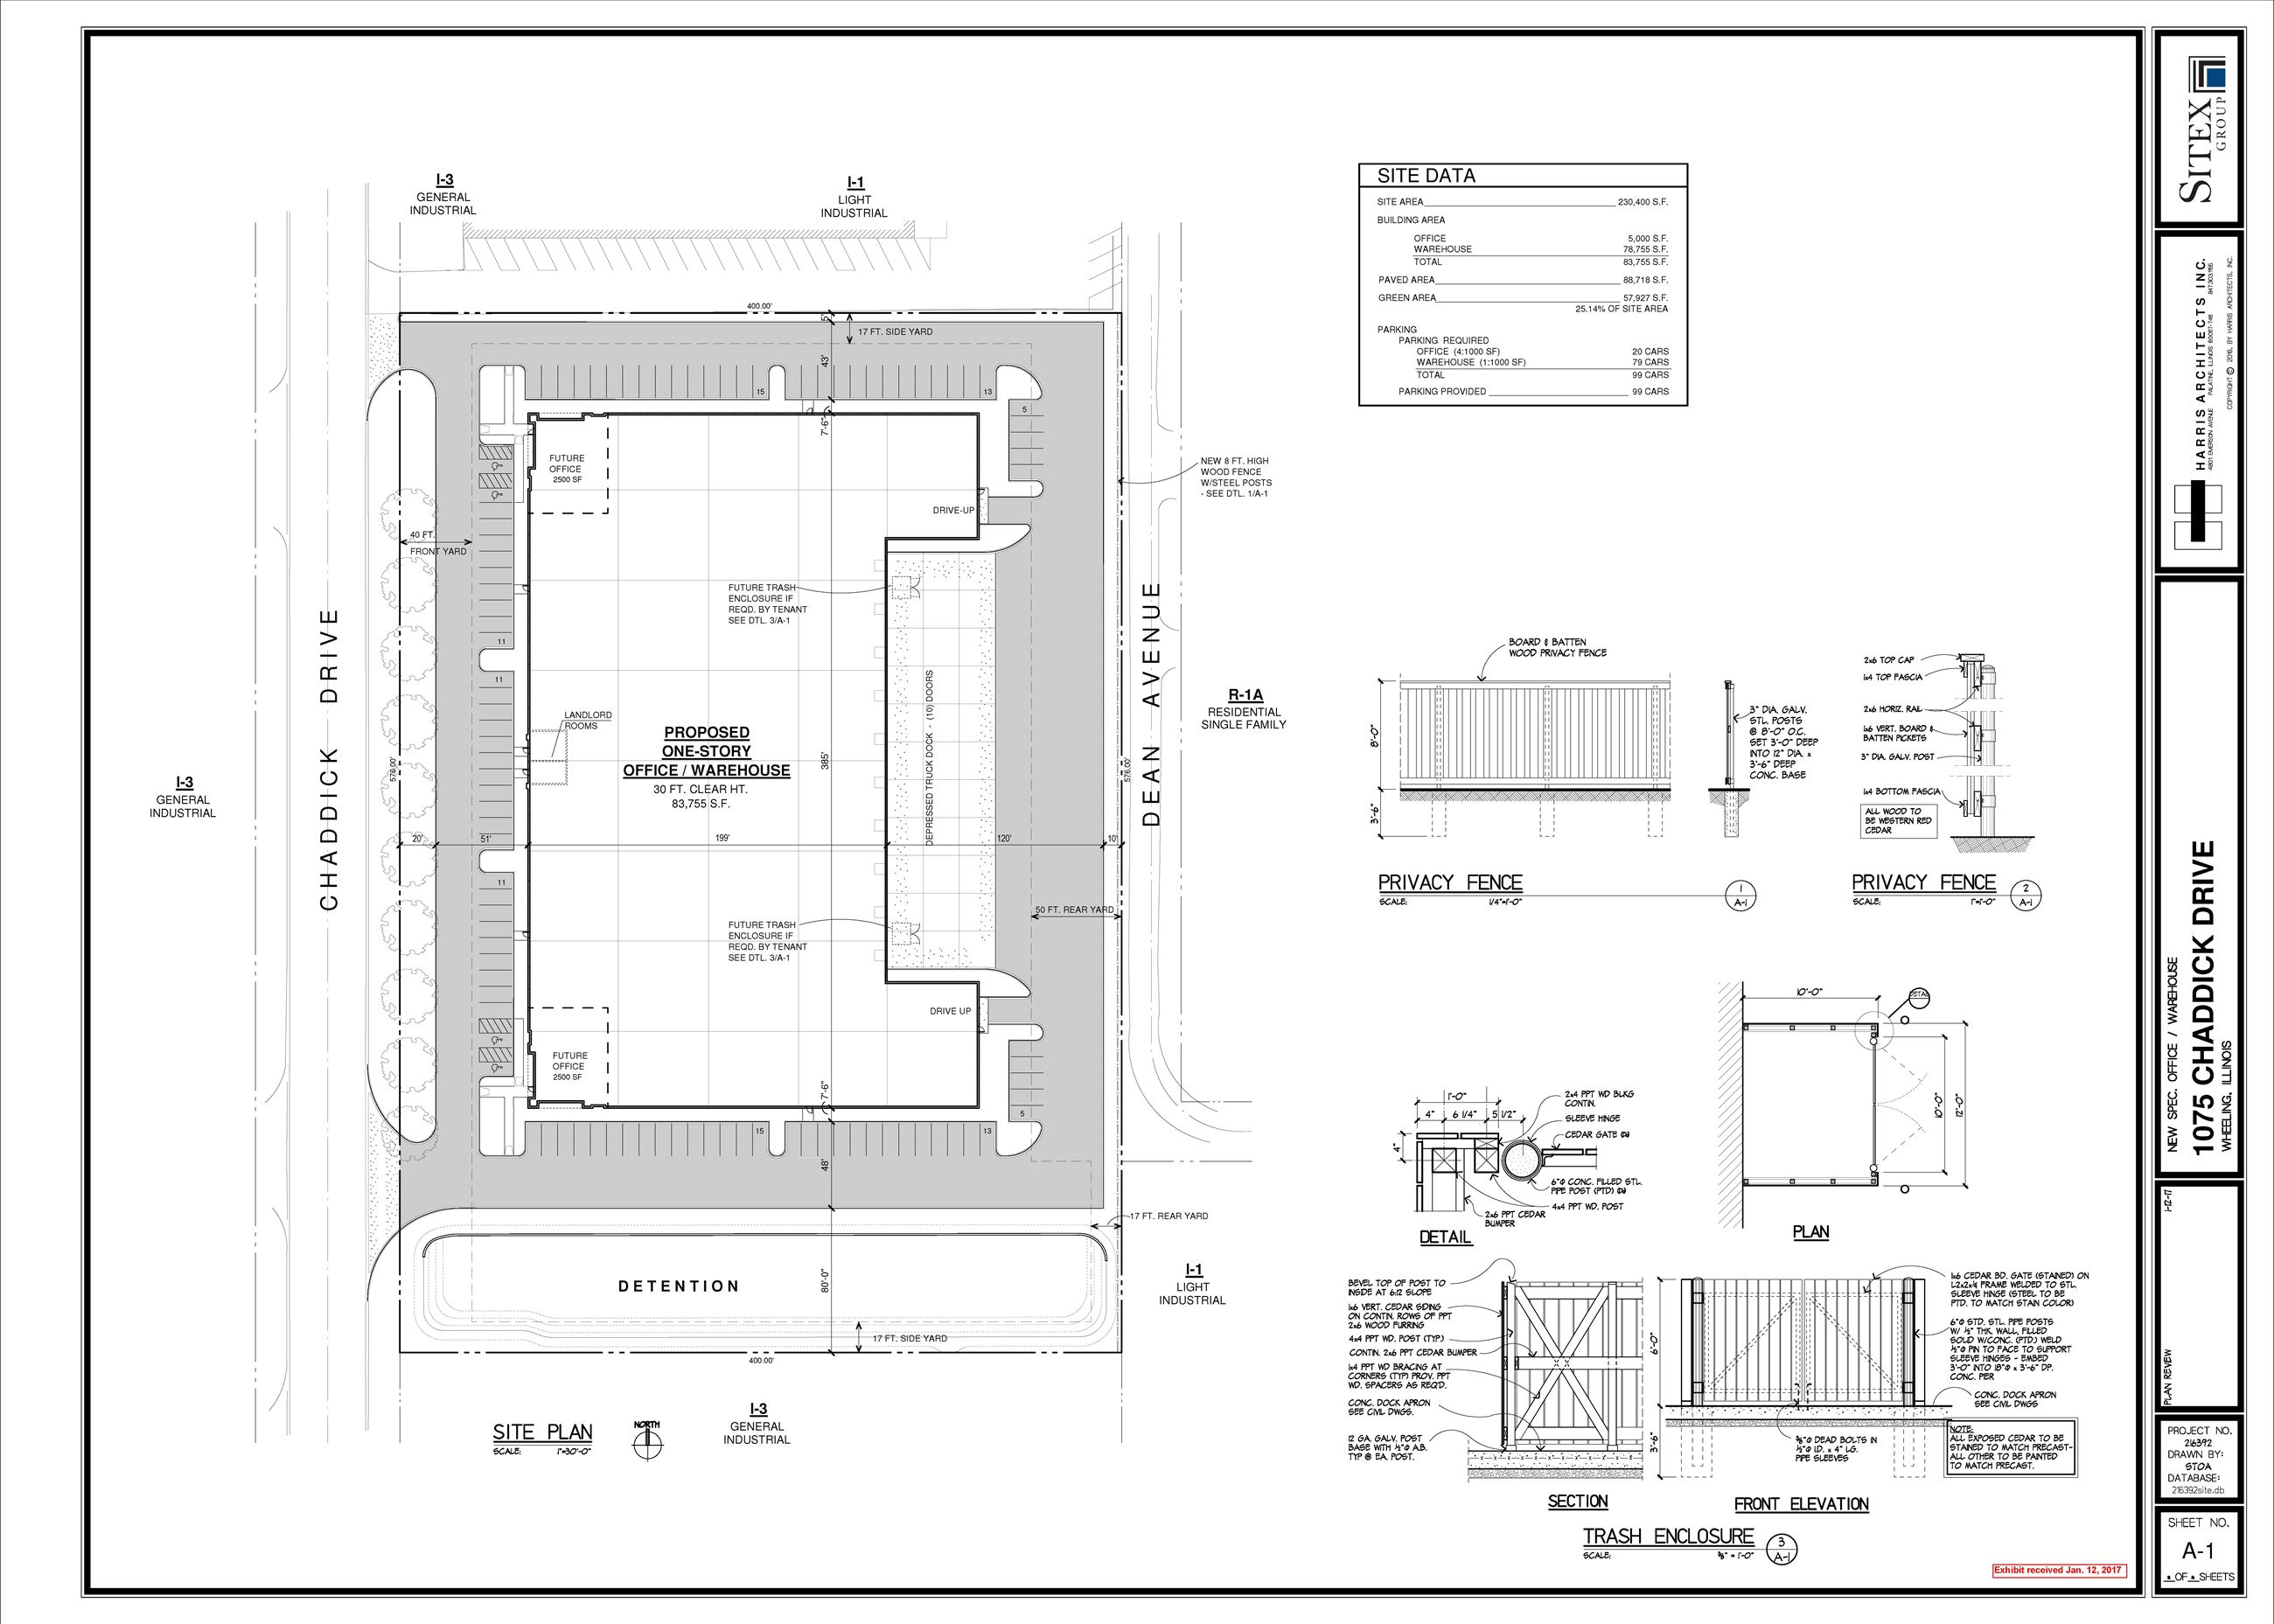 1075 Chaddick - Sitex Site Plan